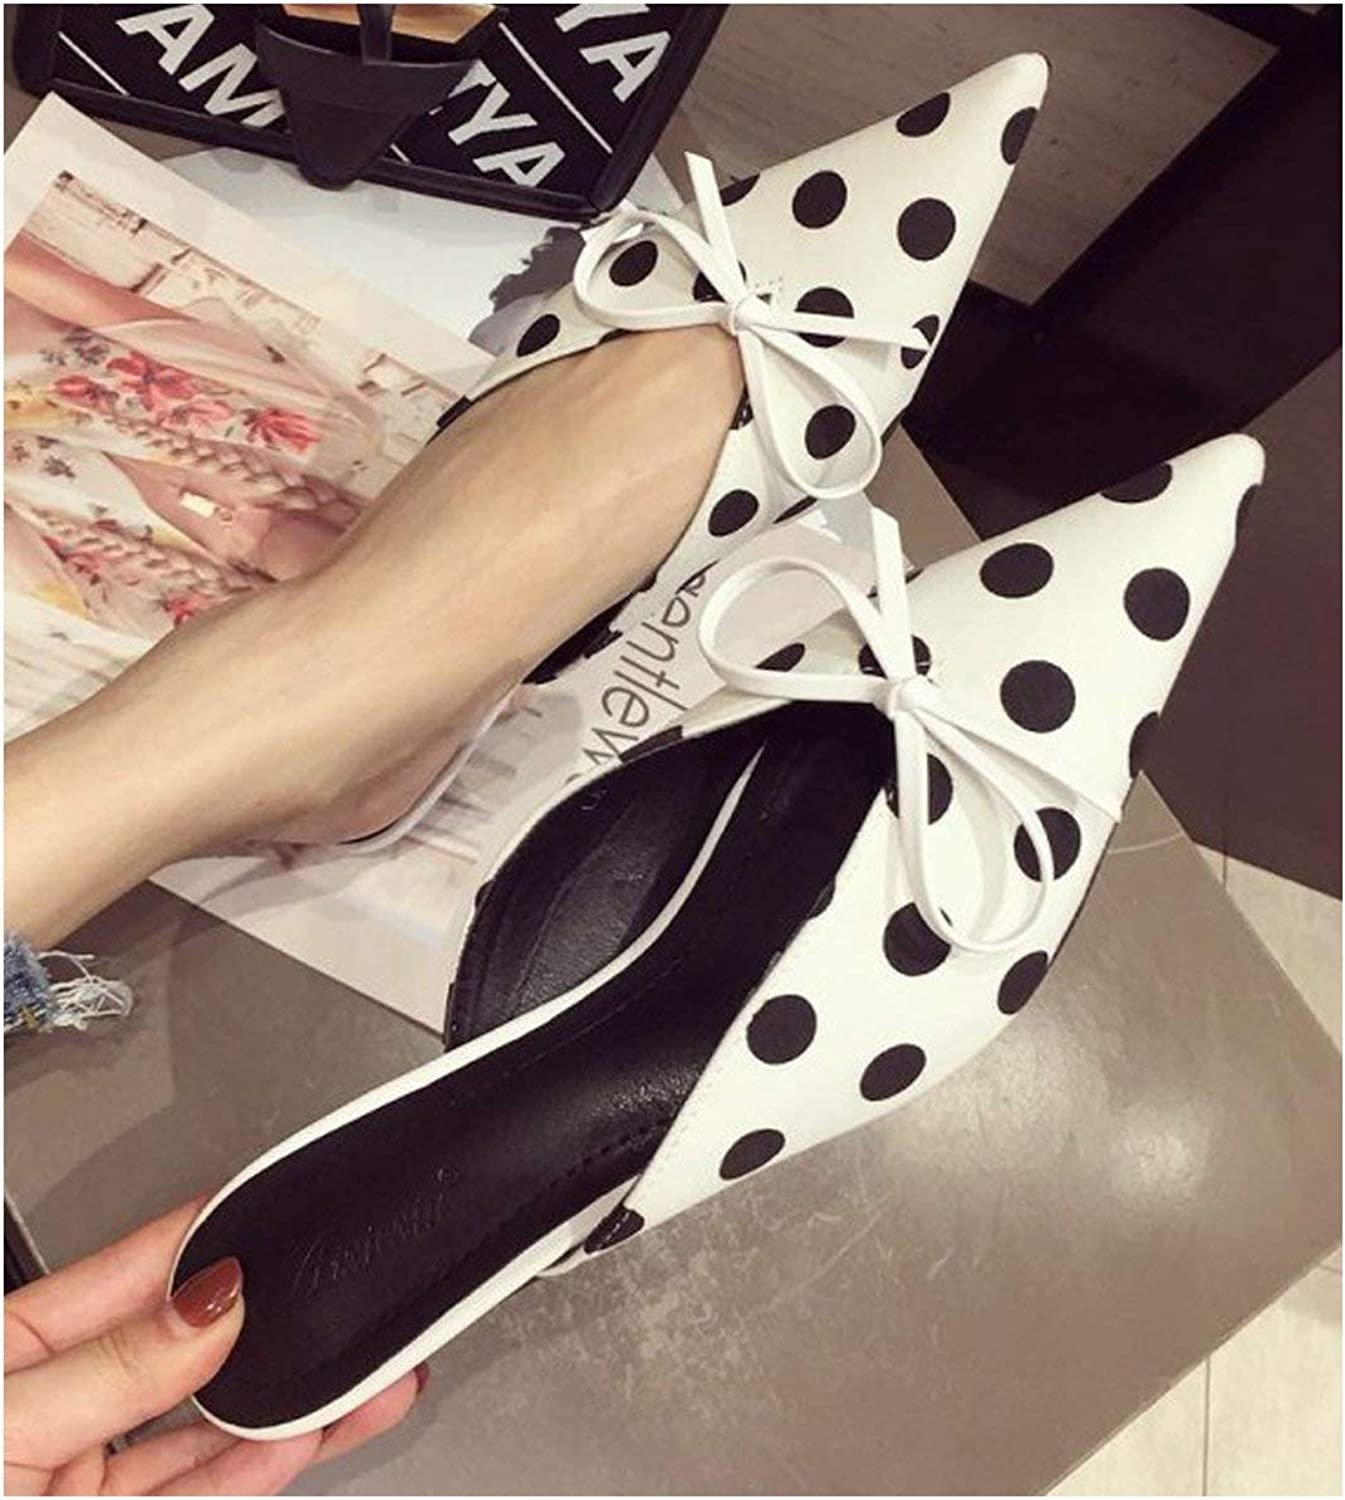 Special shine-shop shoes Pointed Toe dot Print Sandals Women Thin high Heels Bowtie Mules Designer Silk Slippers